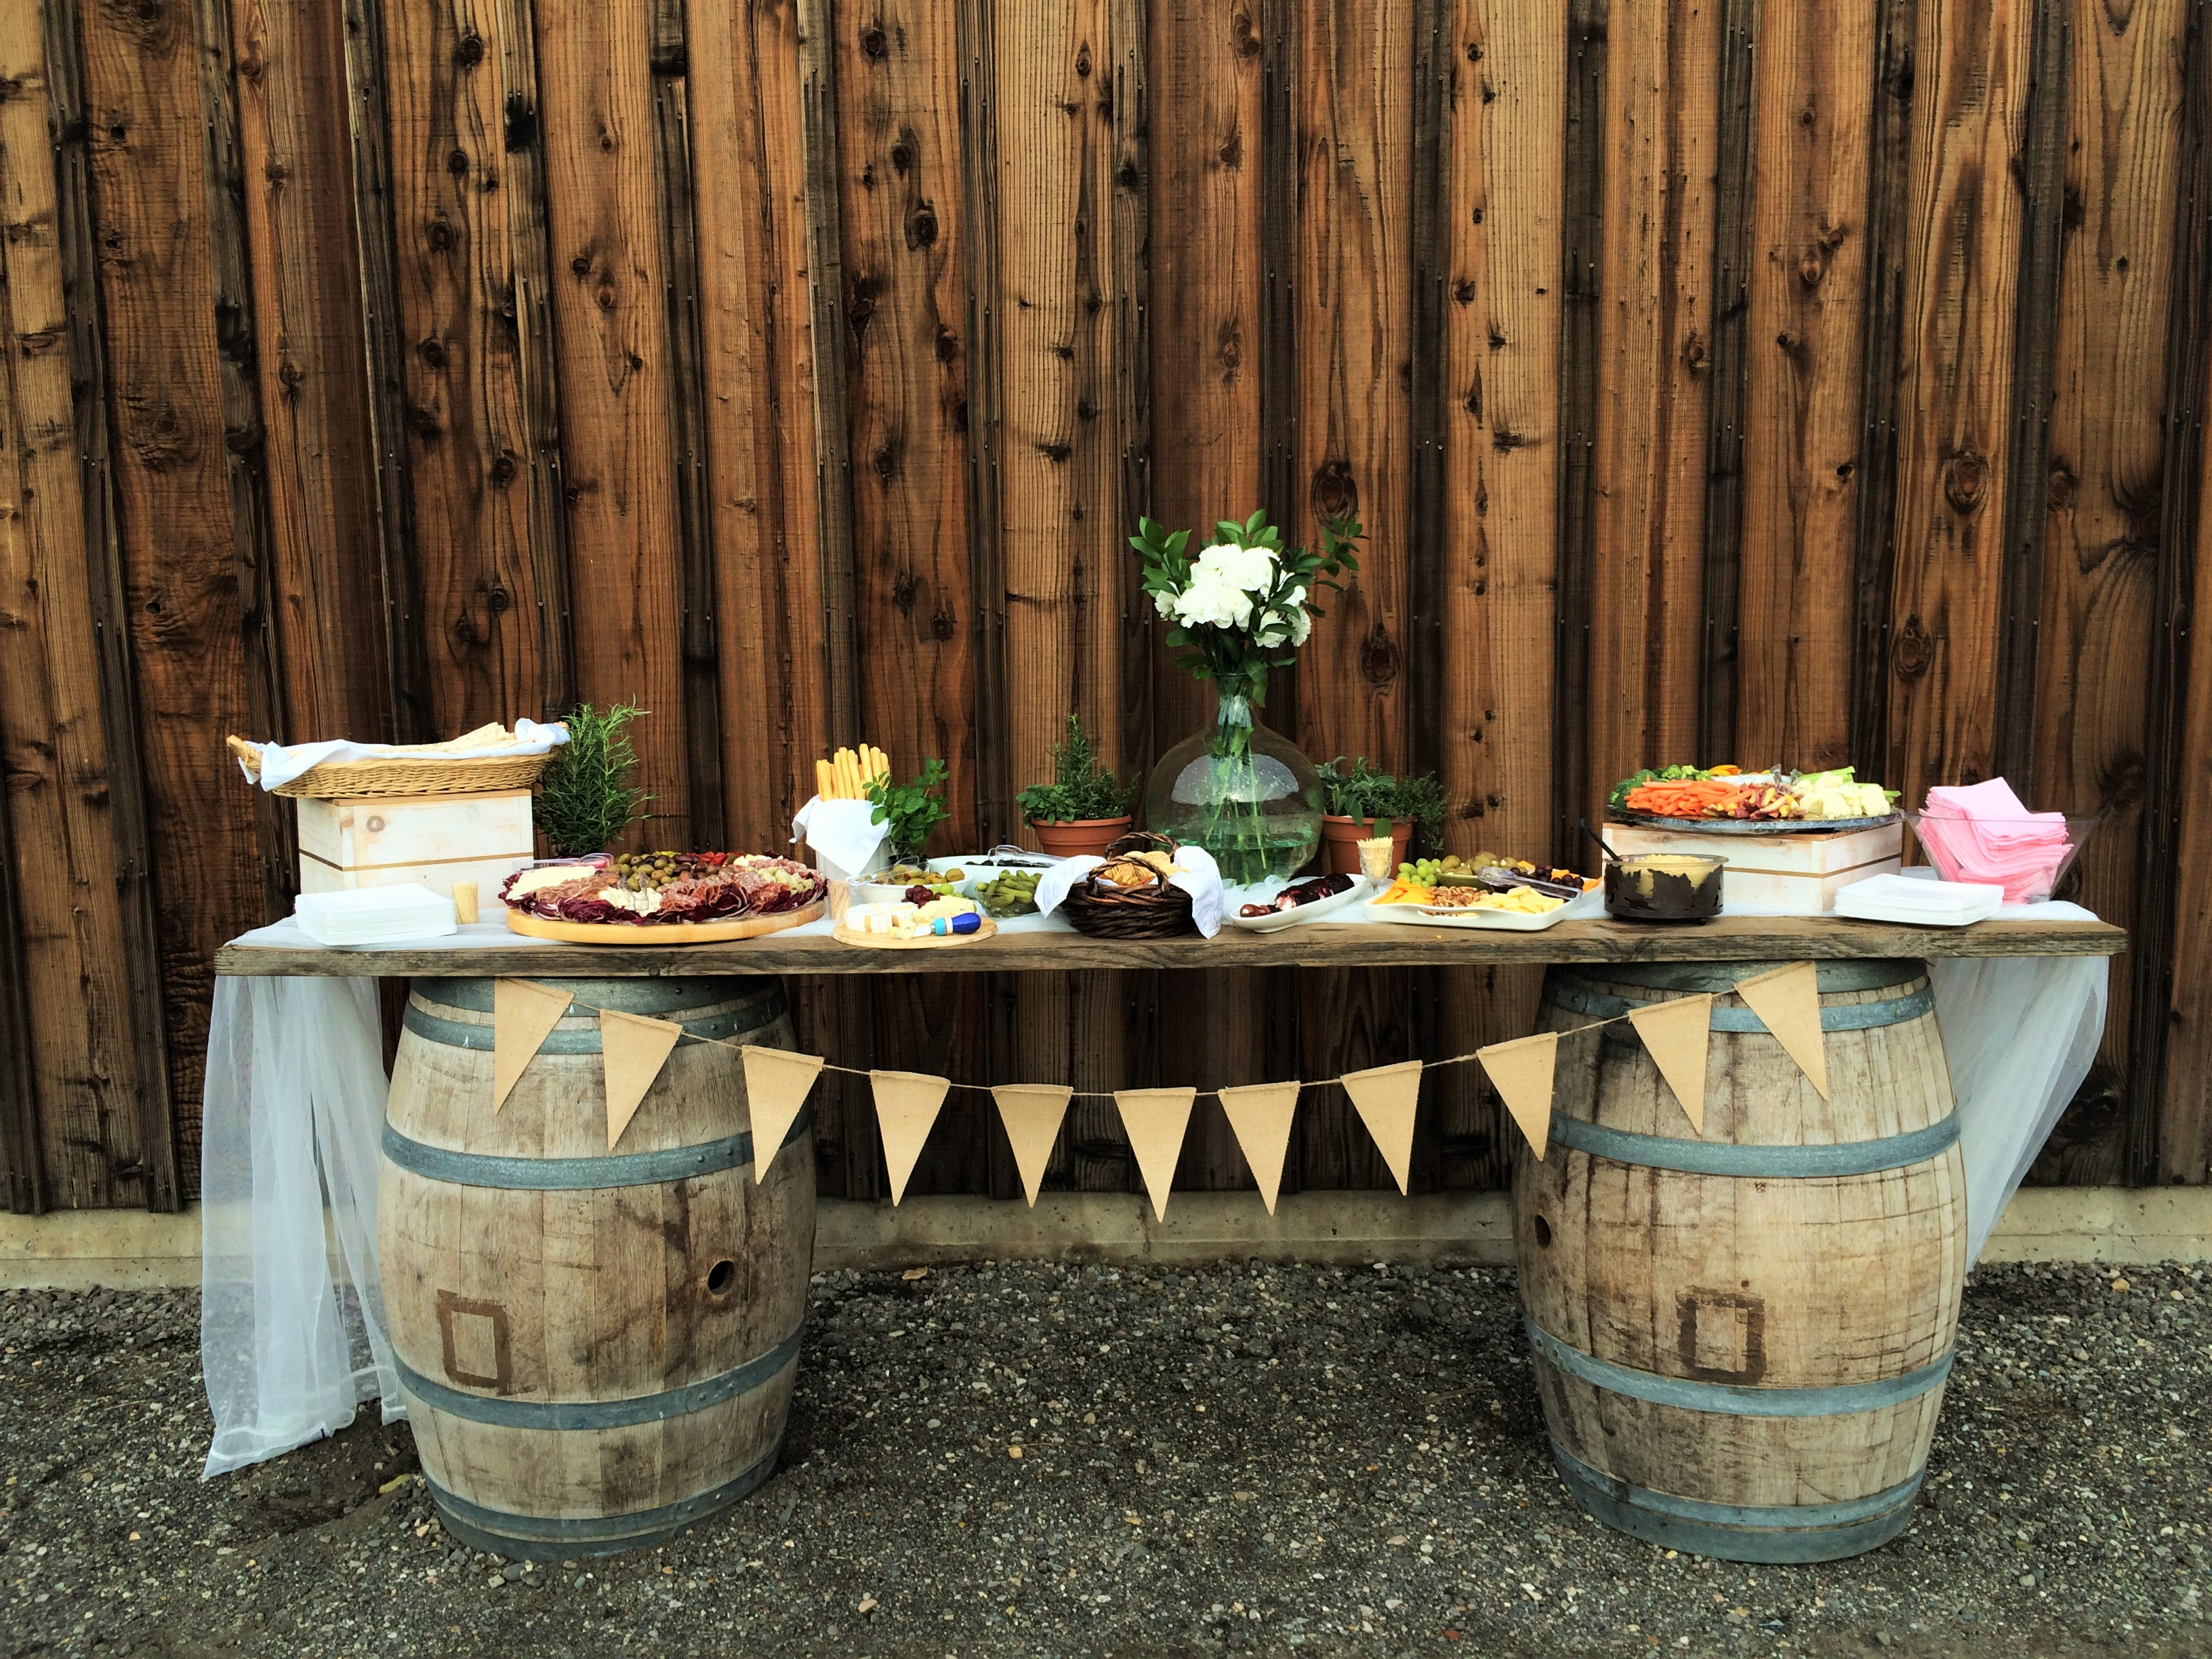 Rustic appetizer table